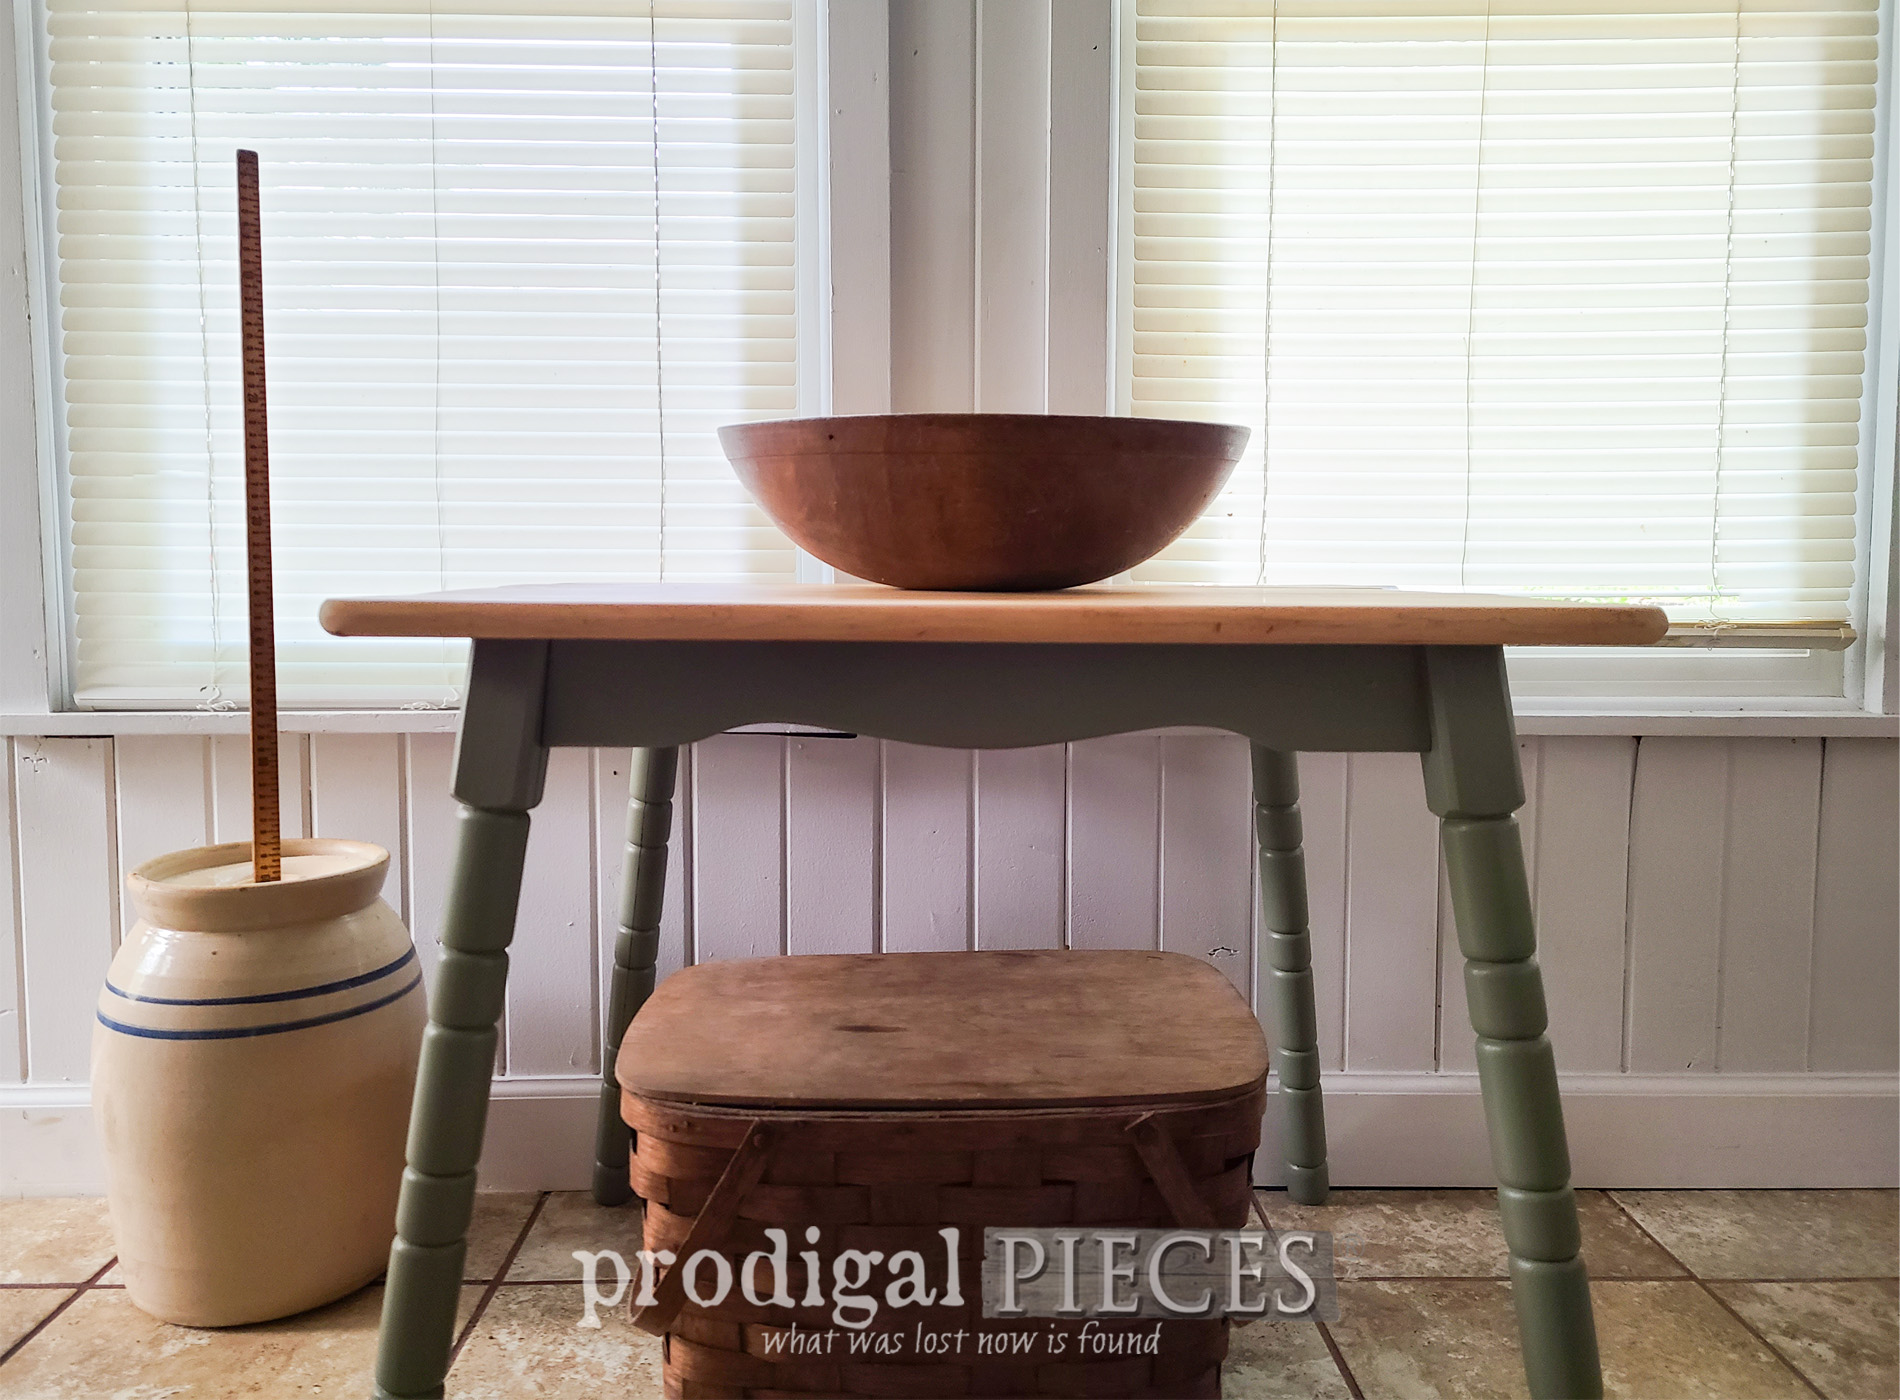 Featured Mini Farmhouse Table Makeover & Update by Larissa of Prodigal Pieces | prodigalpieces.com #prodigalpieces #farmhouse #table #diy #home #furniture